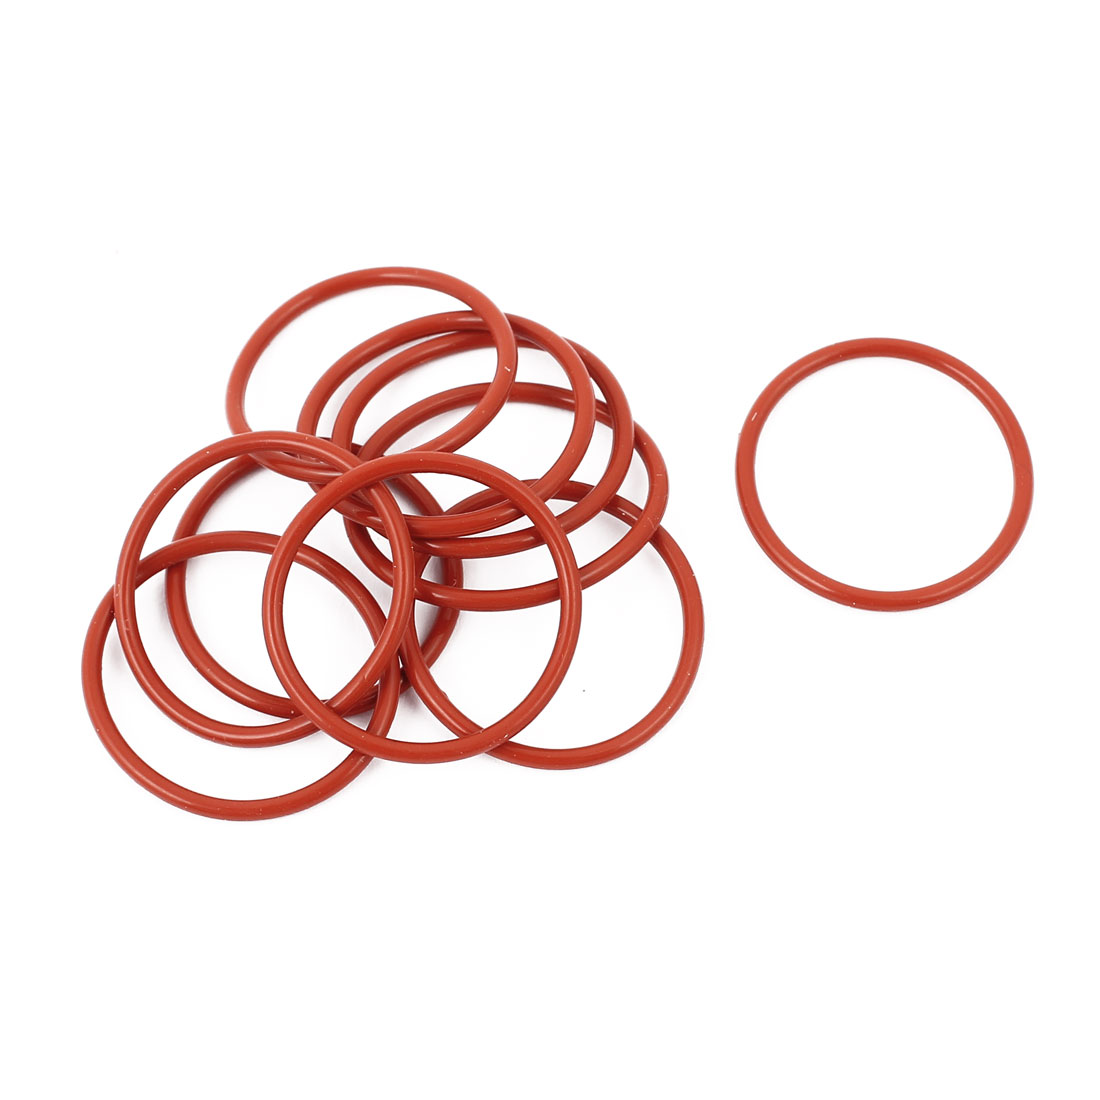 10pcs 1.5mm Thick Heat Oil Resistant Mini O-Ring Rubber Sealing Ring 22mm OD Red